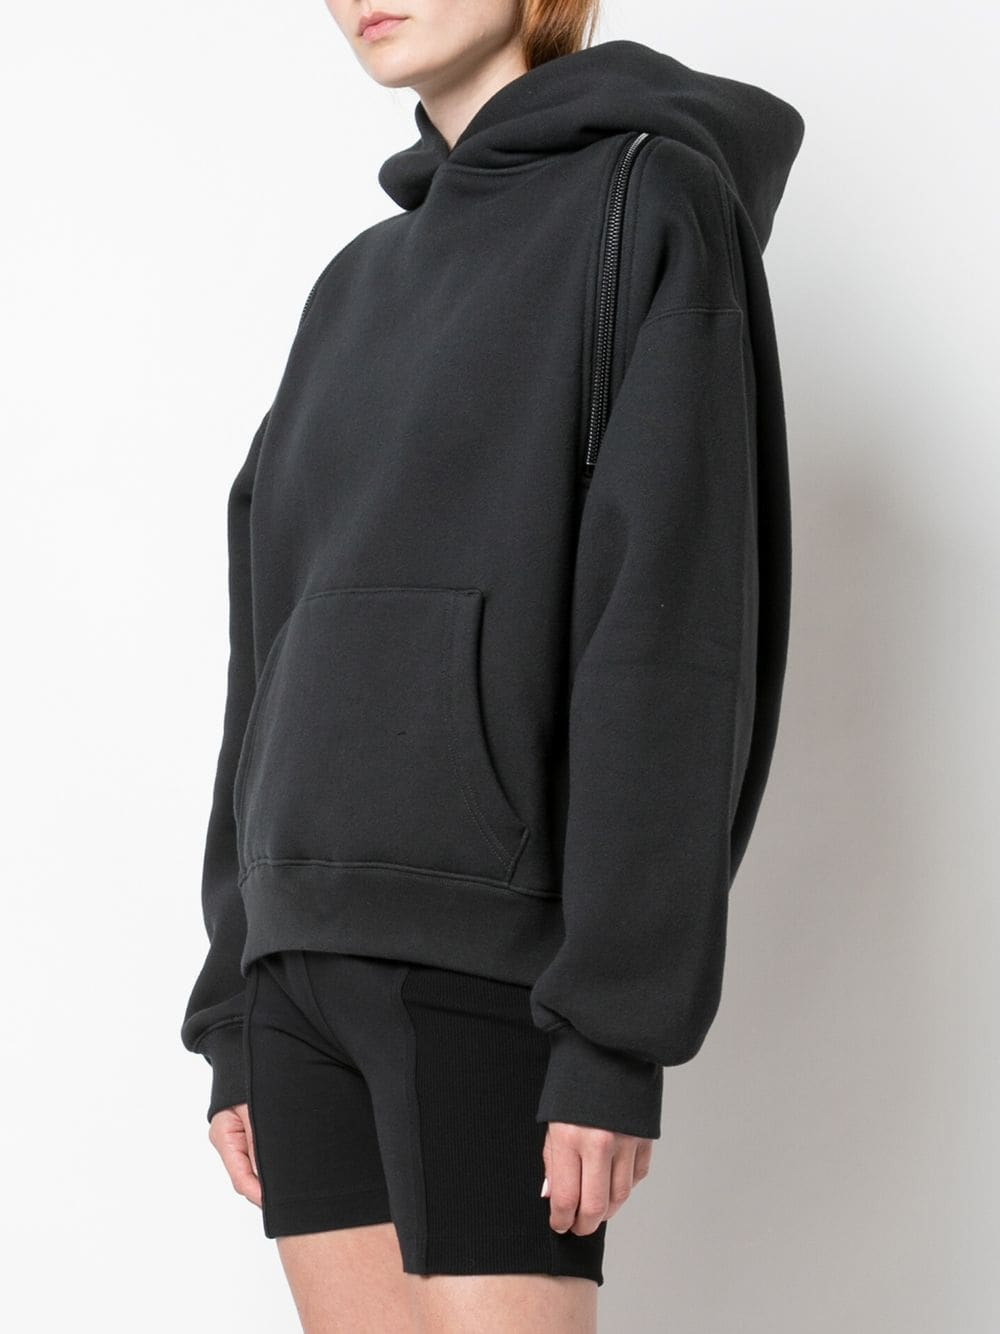 ALEXANDER WANG WOMEN WASH & GO DENSE FLEECE HOODIE W. ZIPPER DETAIL